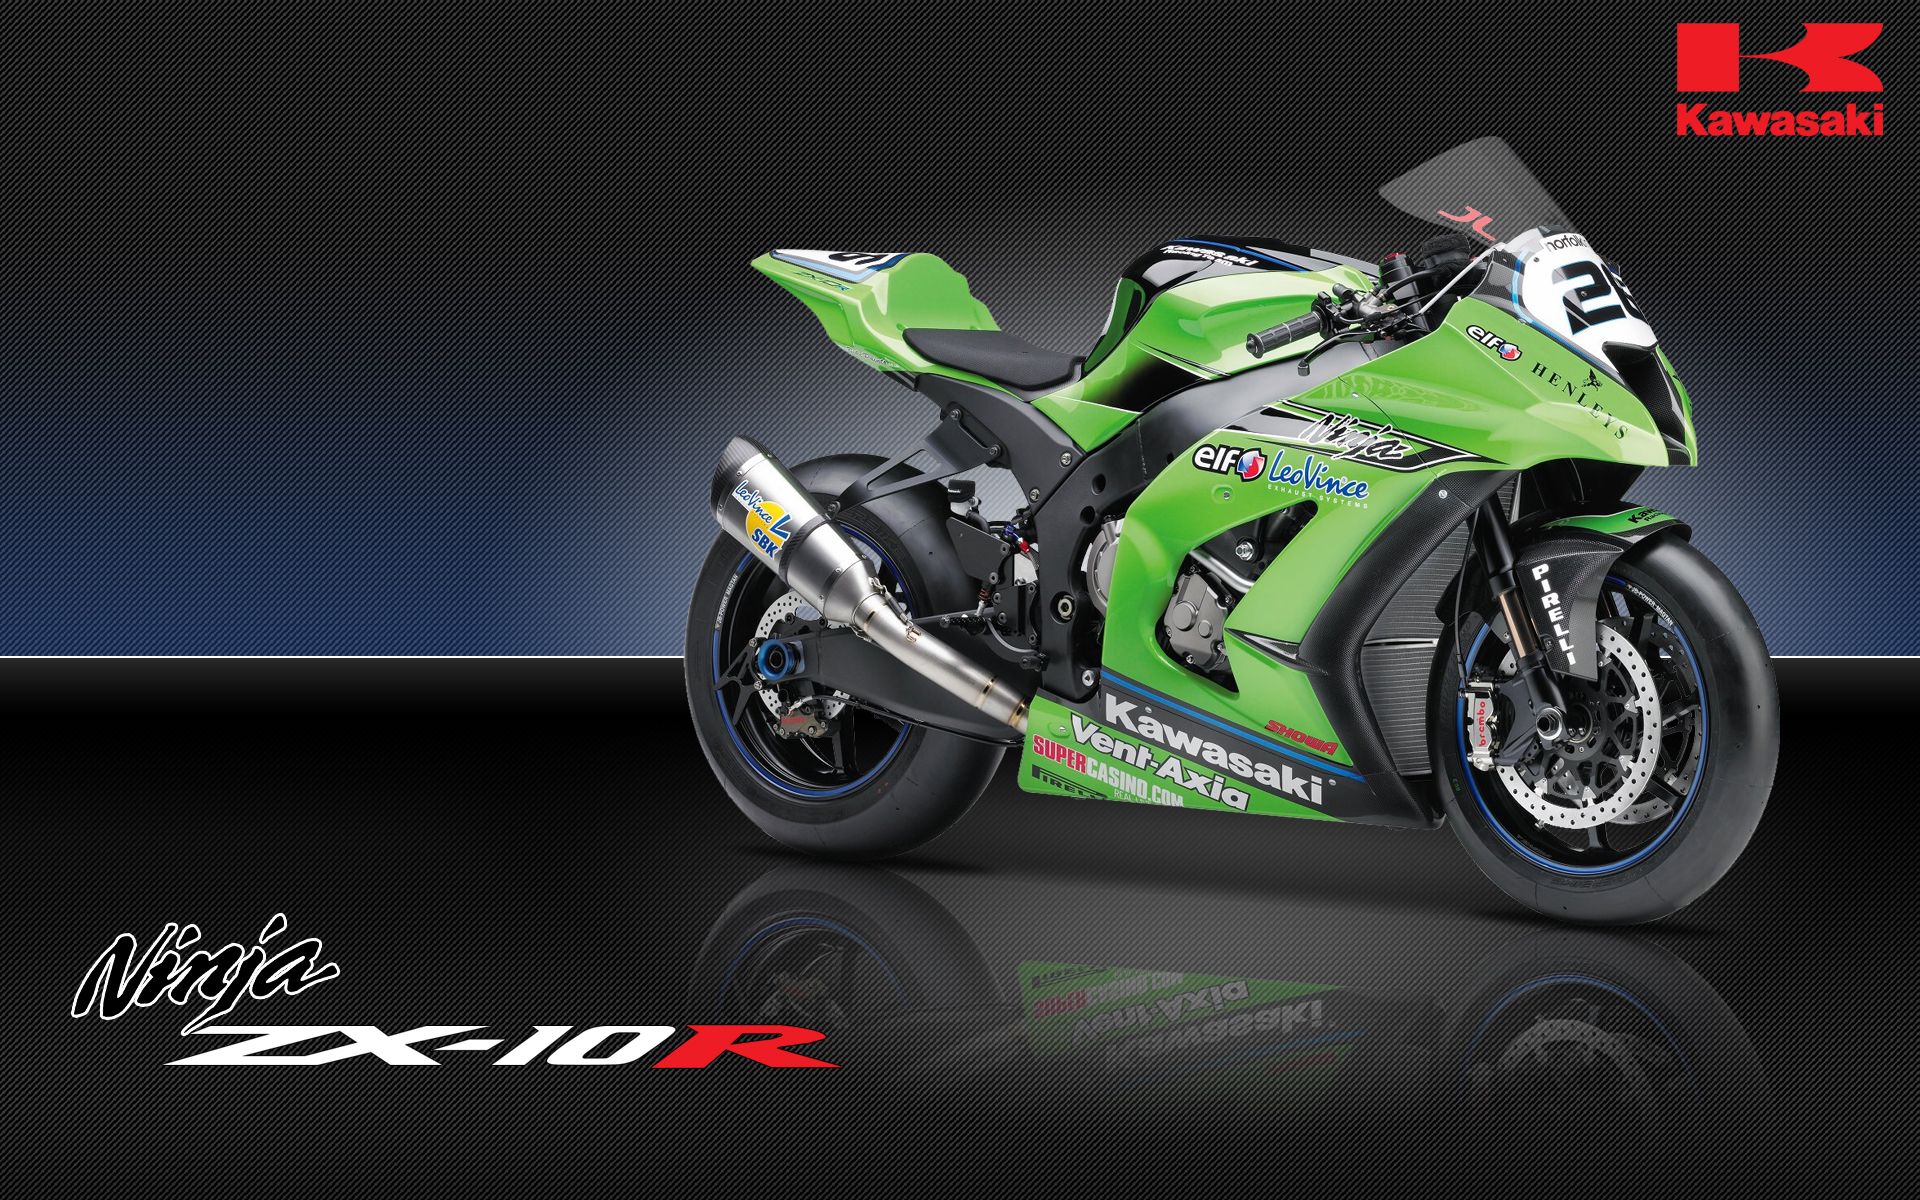 Kawasaki Wallpaper